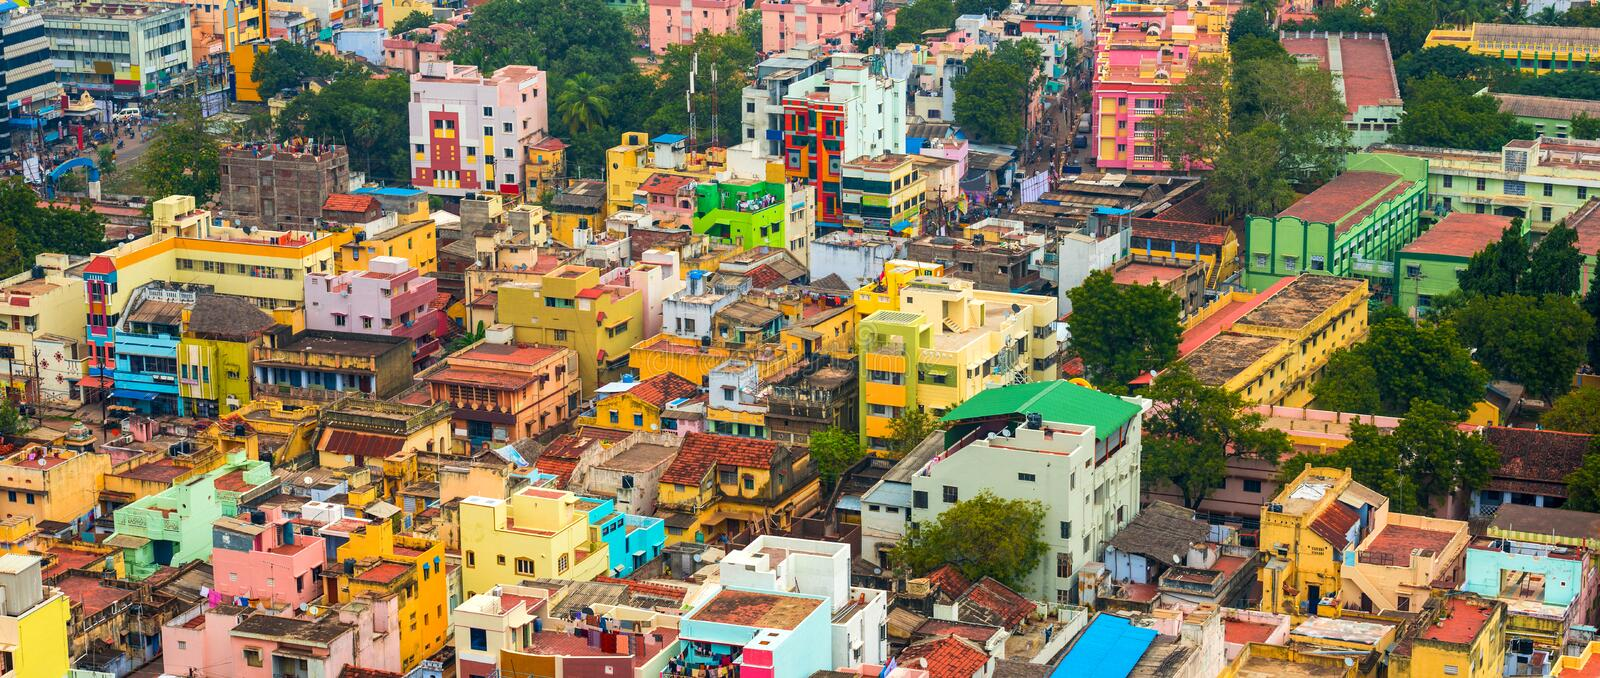 Cityscape of colorful homes in crowded Indian city Trichy, panor. Ama royalty free stock photo